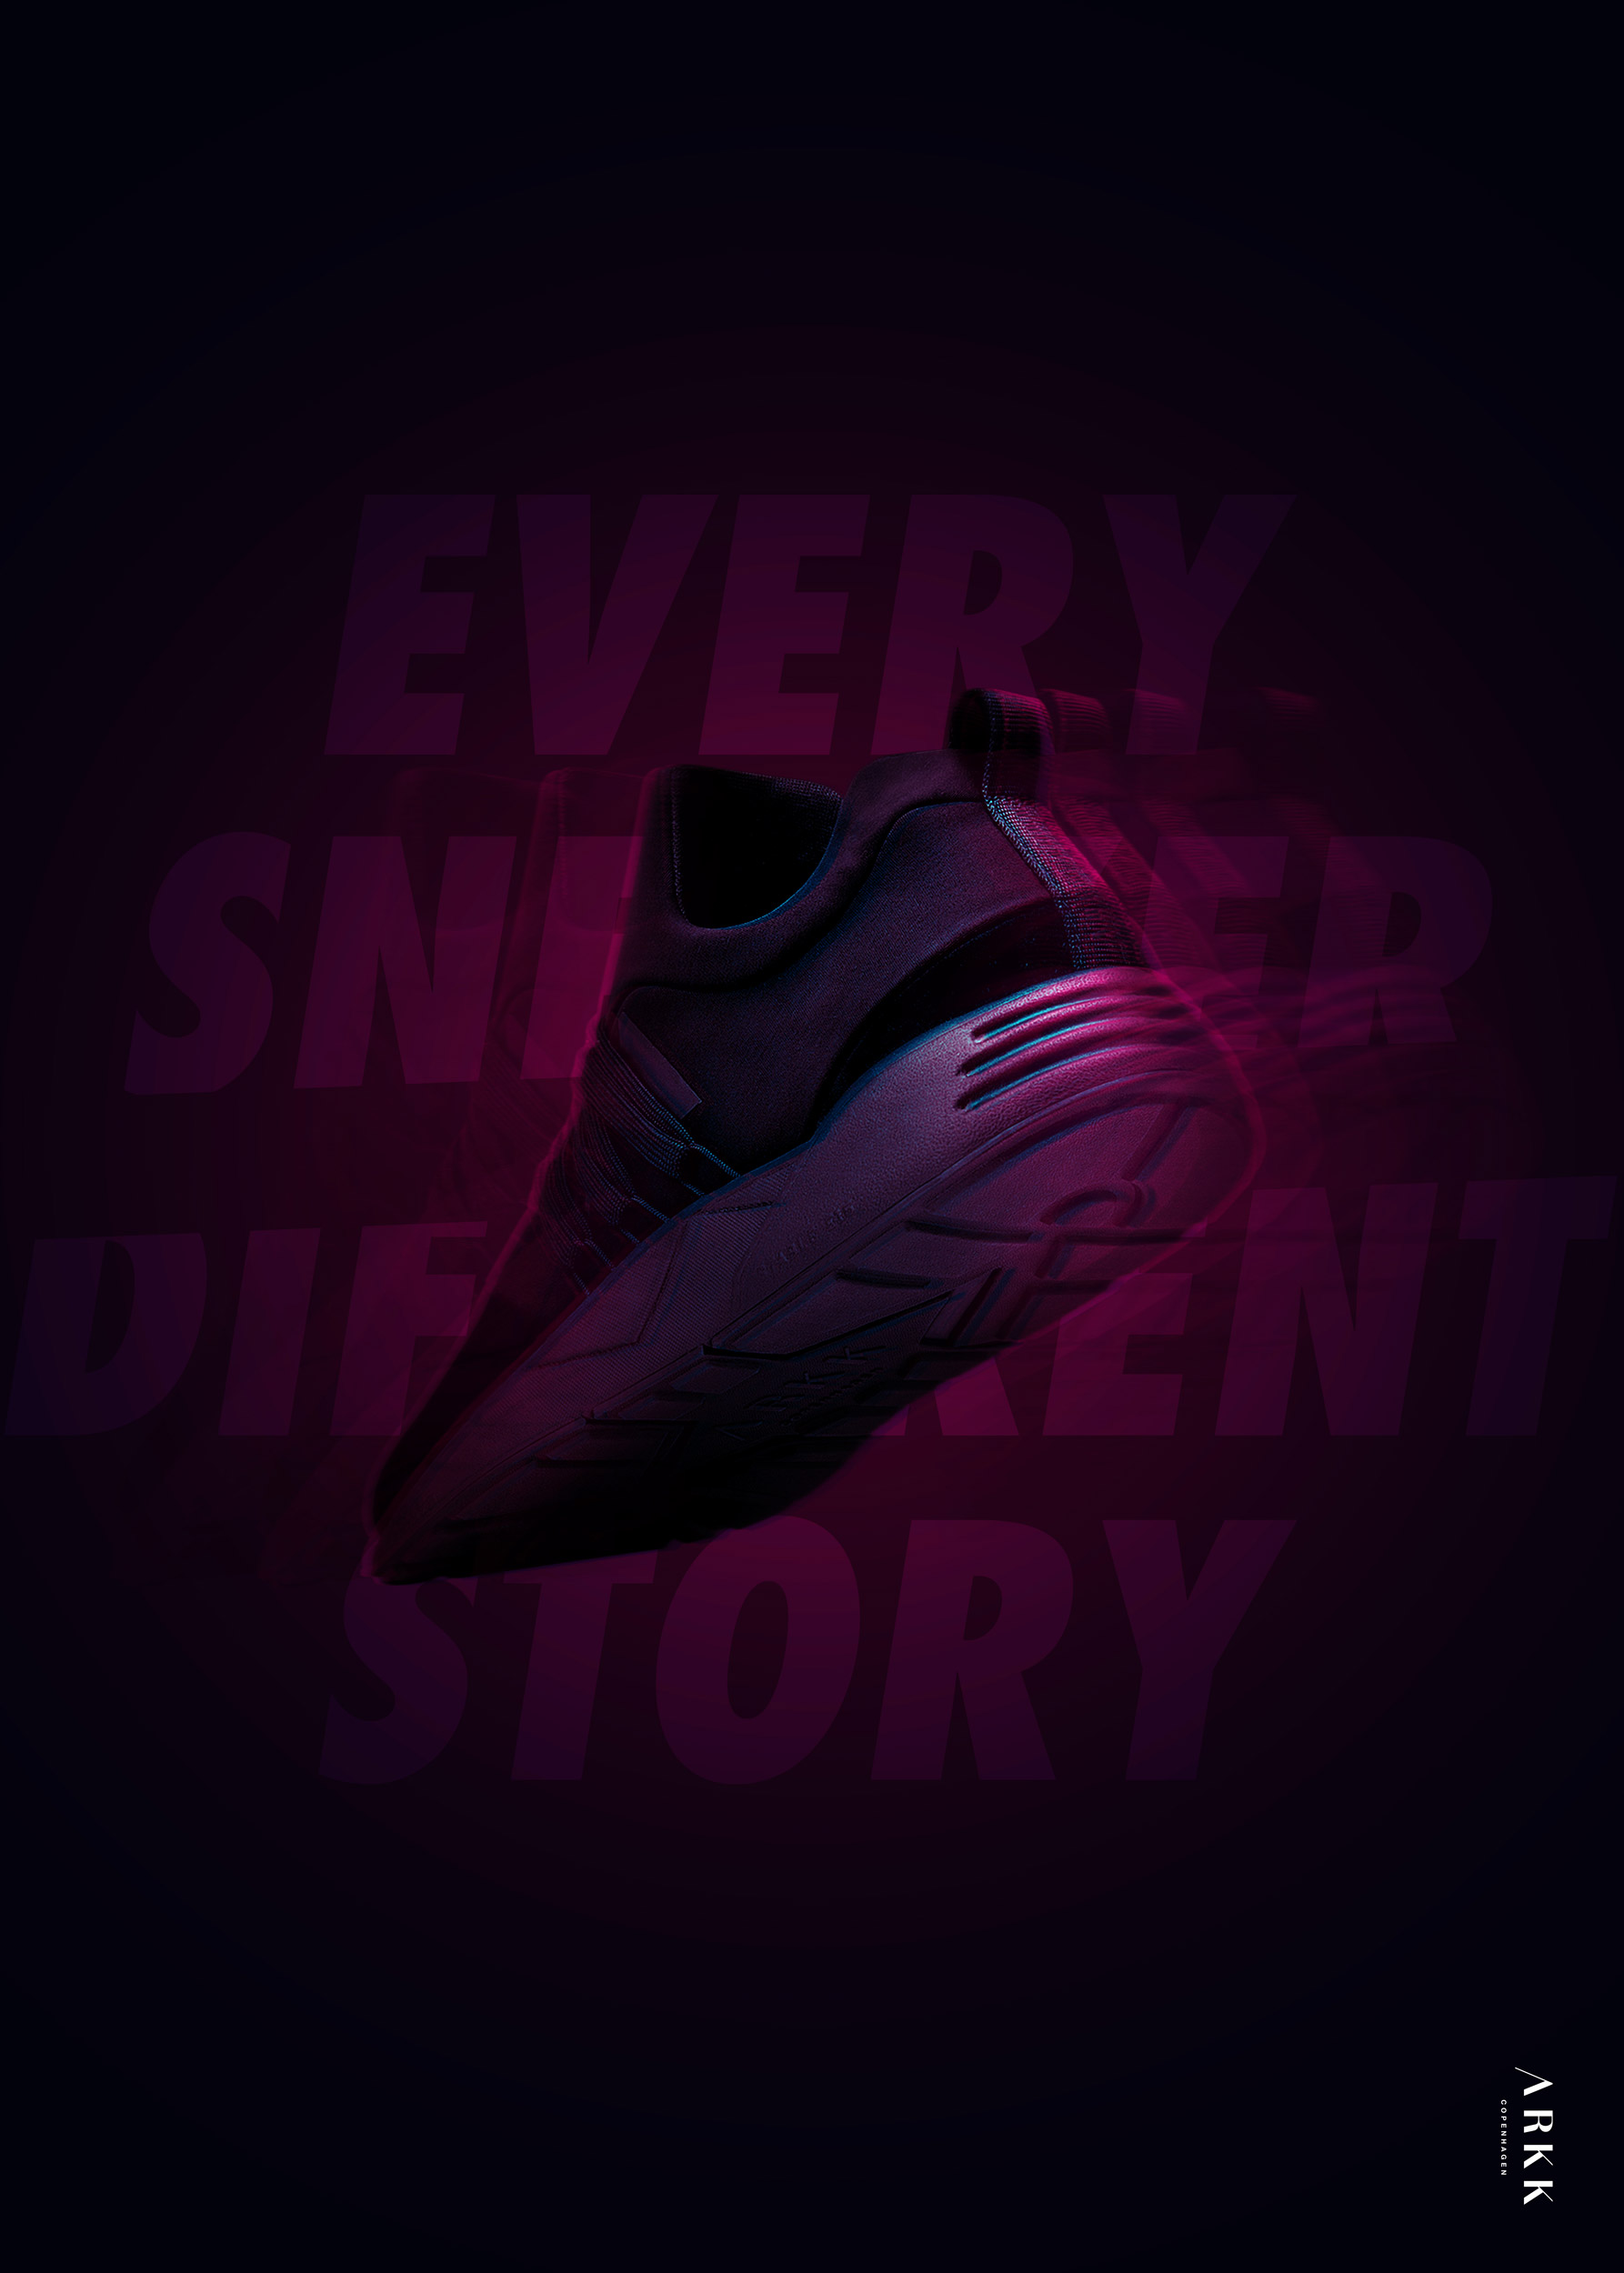 About Every Sneaker Different Story